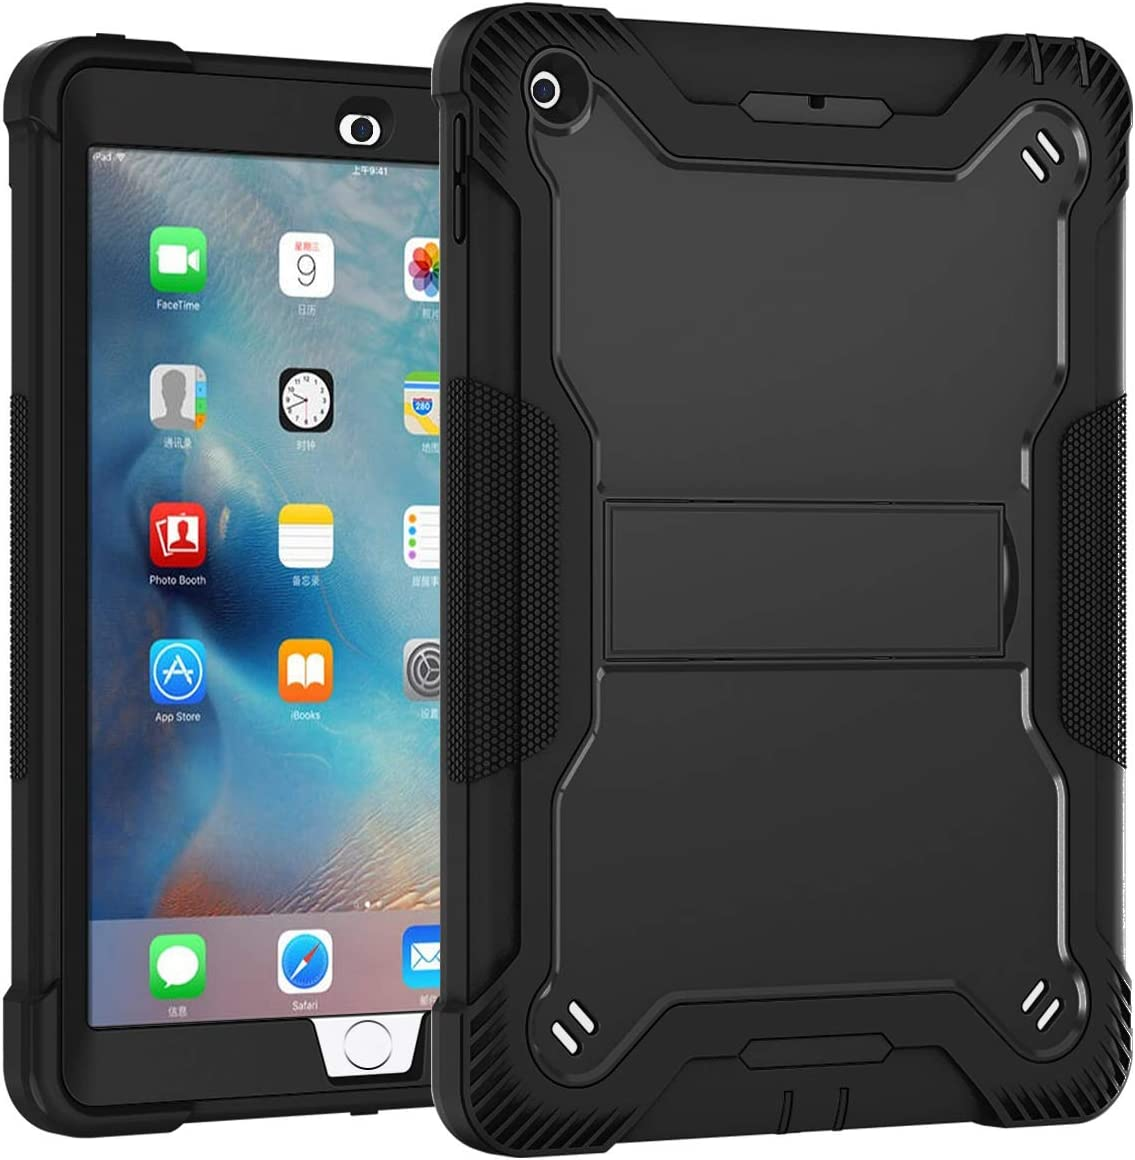 Lamcase for iPad 2 Case, iPad 3 Case, iPad 4 Case, Built with Kickstand Heavy Duty Rubber Hybrid High Impact Drop Rugged Shockproof Full Body Protective Case for iPad 4th/3rd/2nd Generation, Black